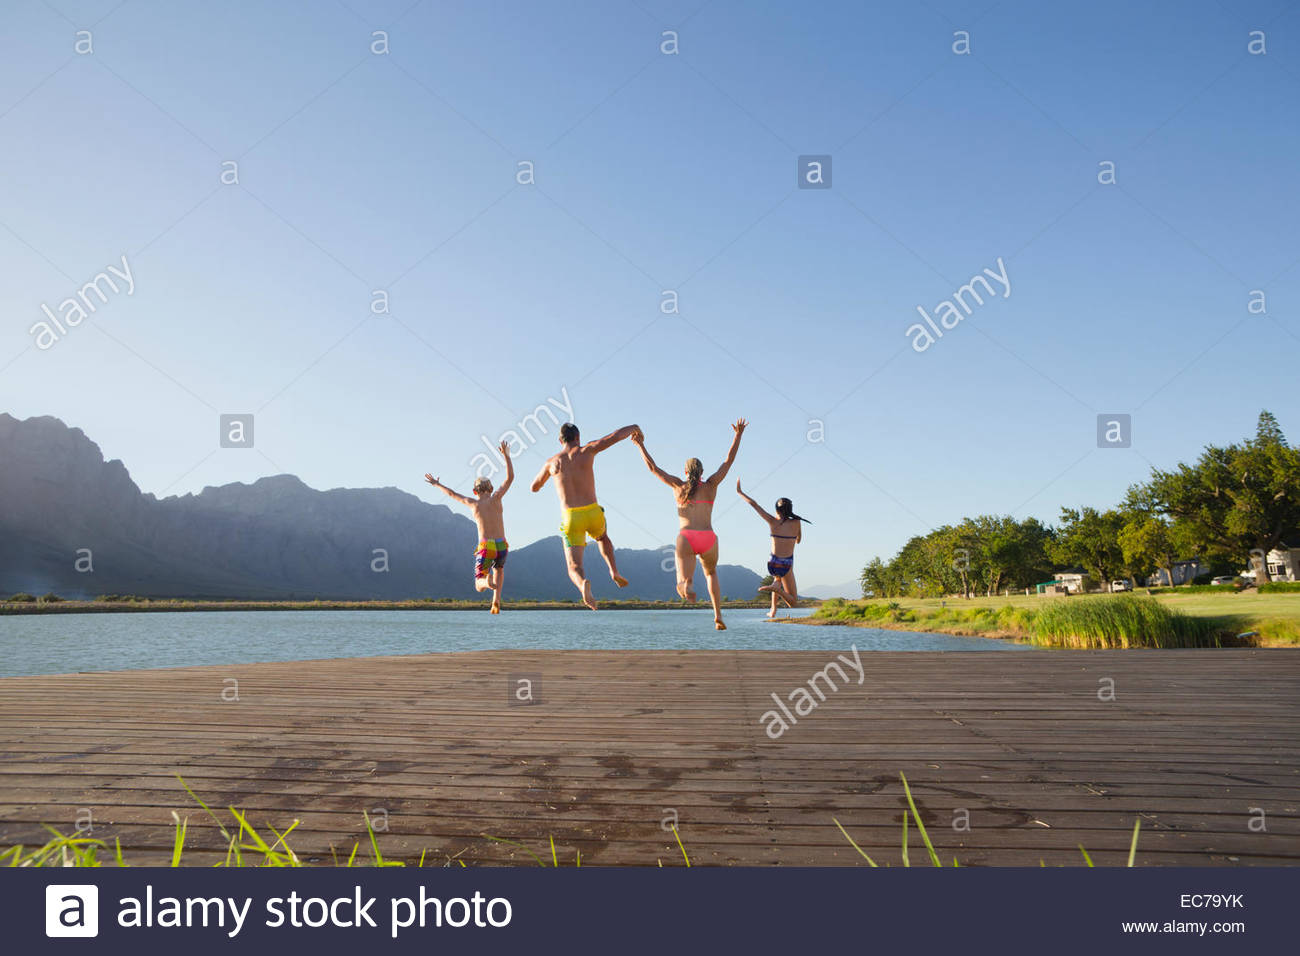 Family jumping into lake from a jetty - Stock Image